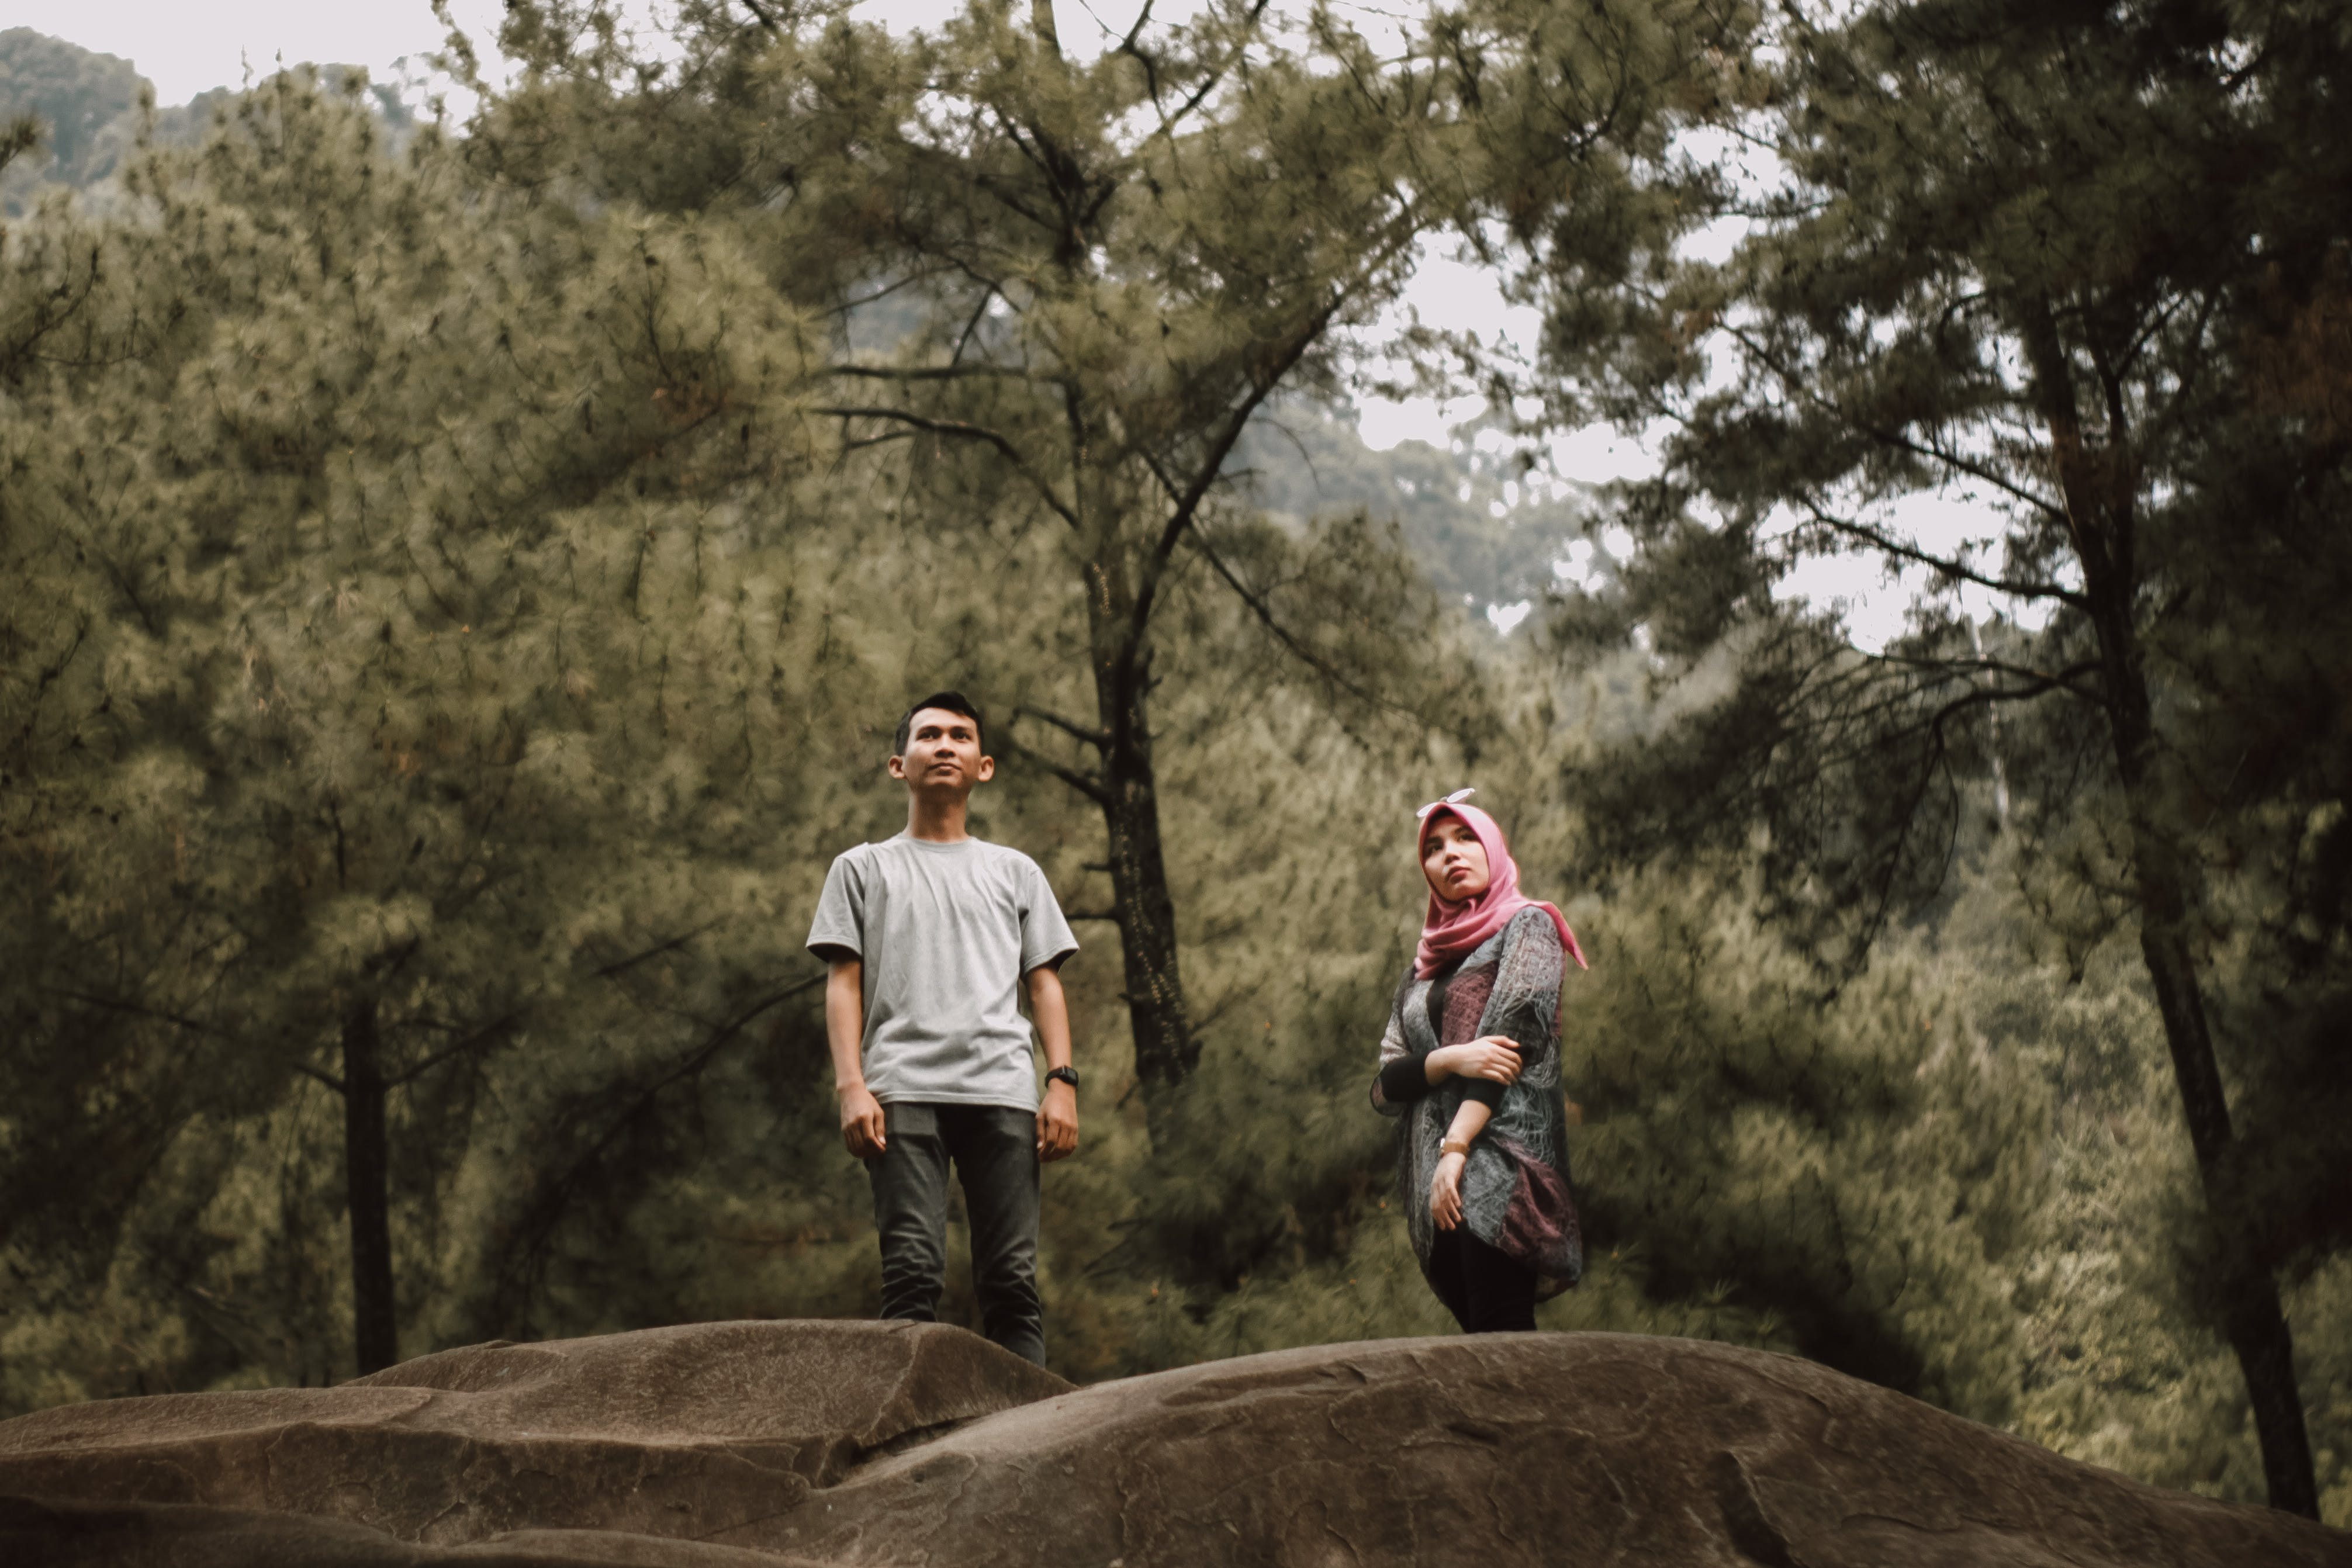 Man And Woman Standing Near Pine Trees